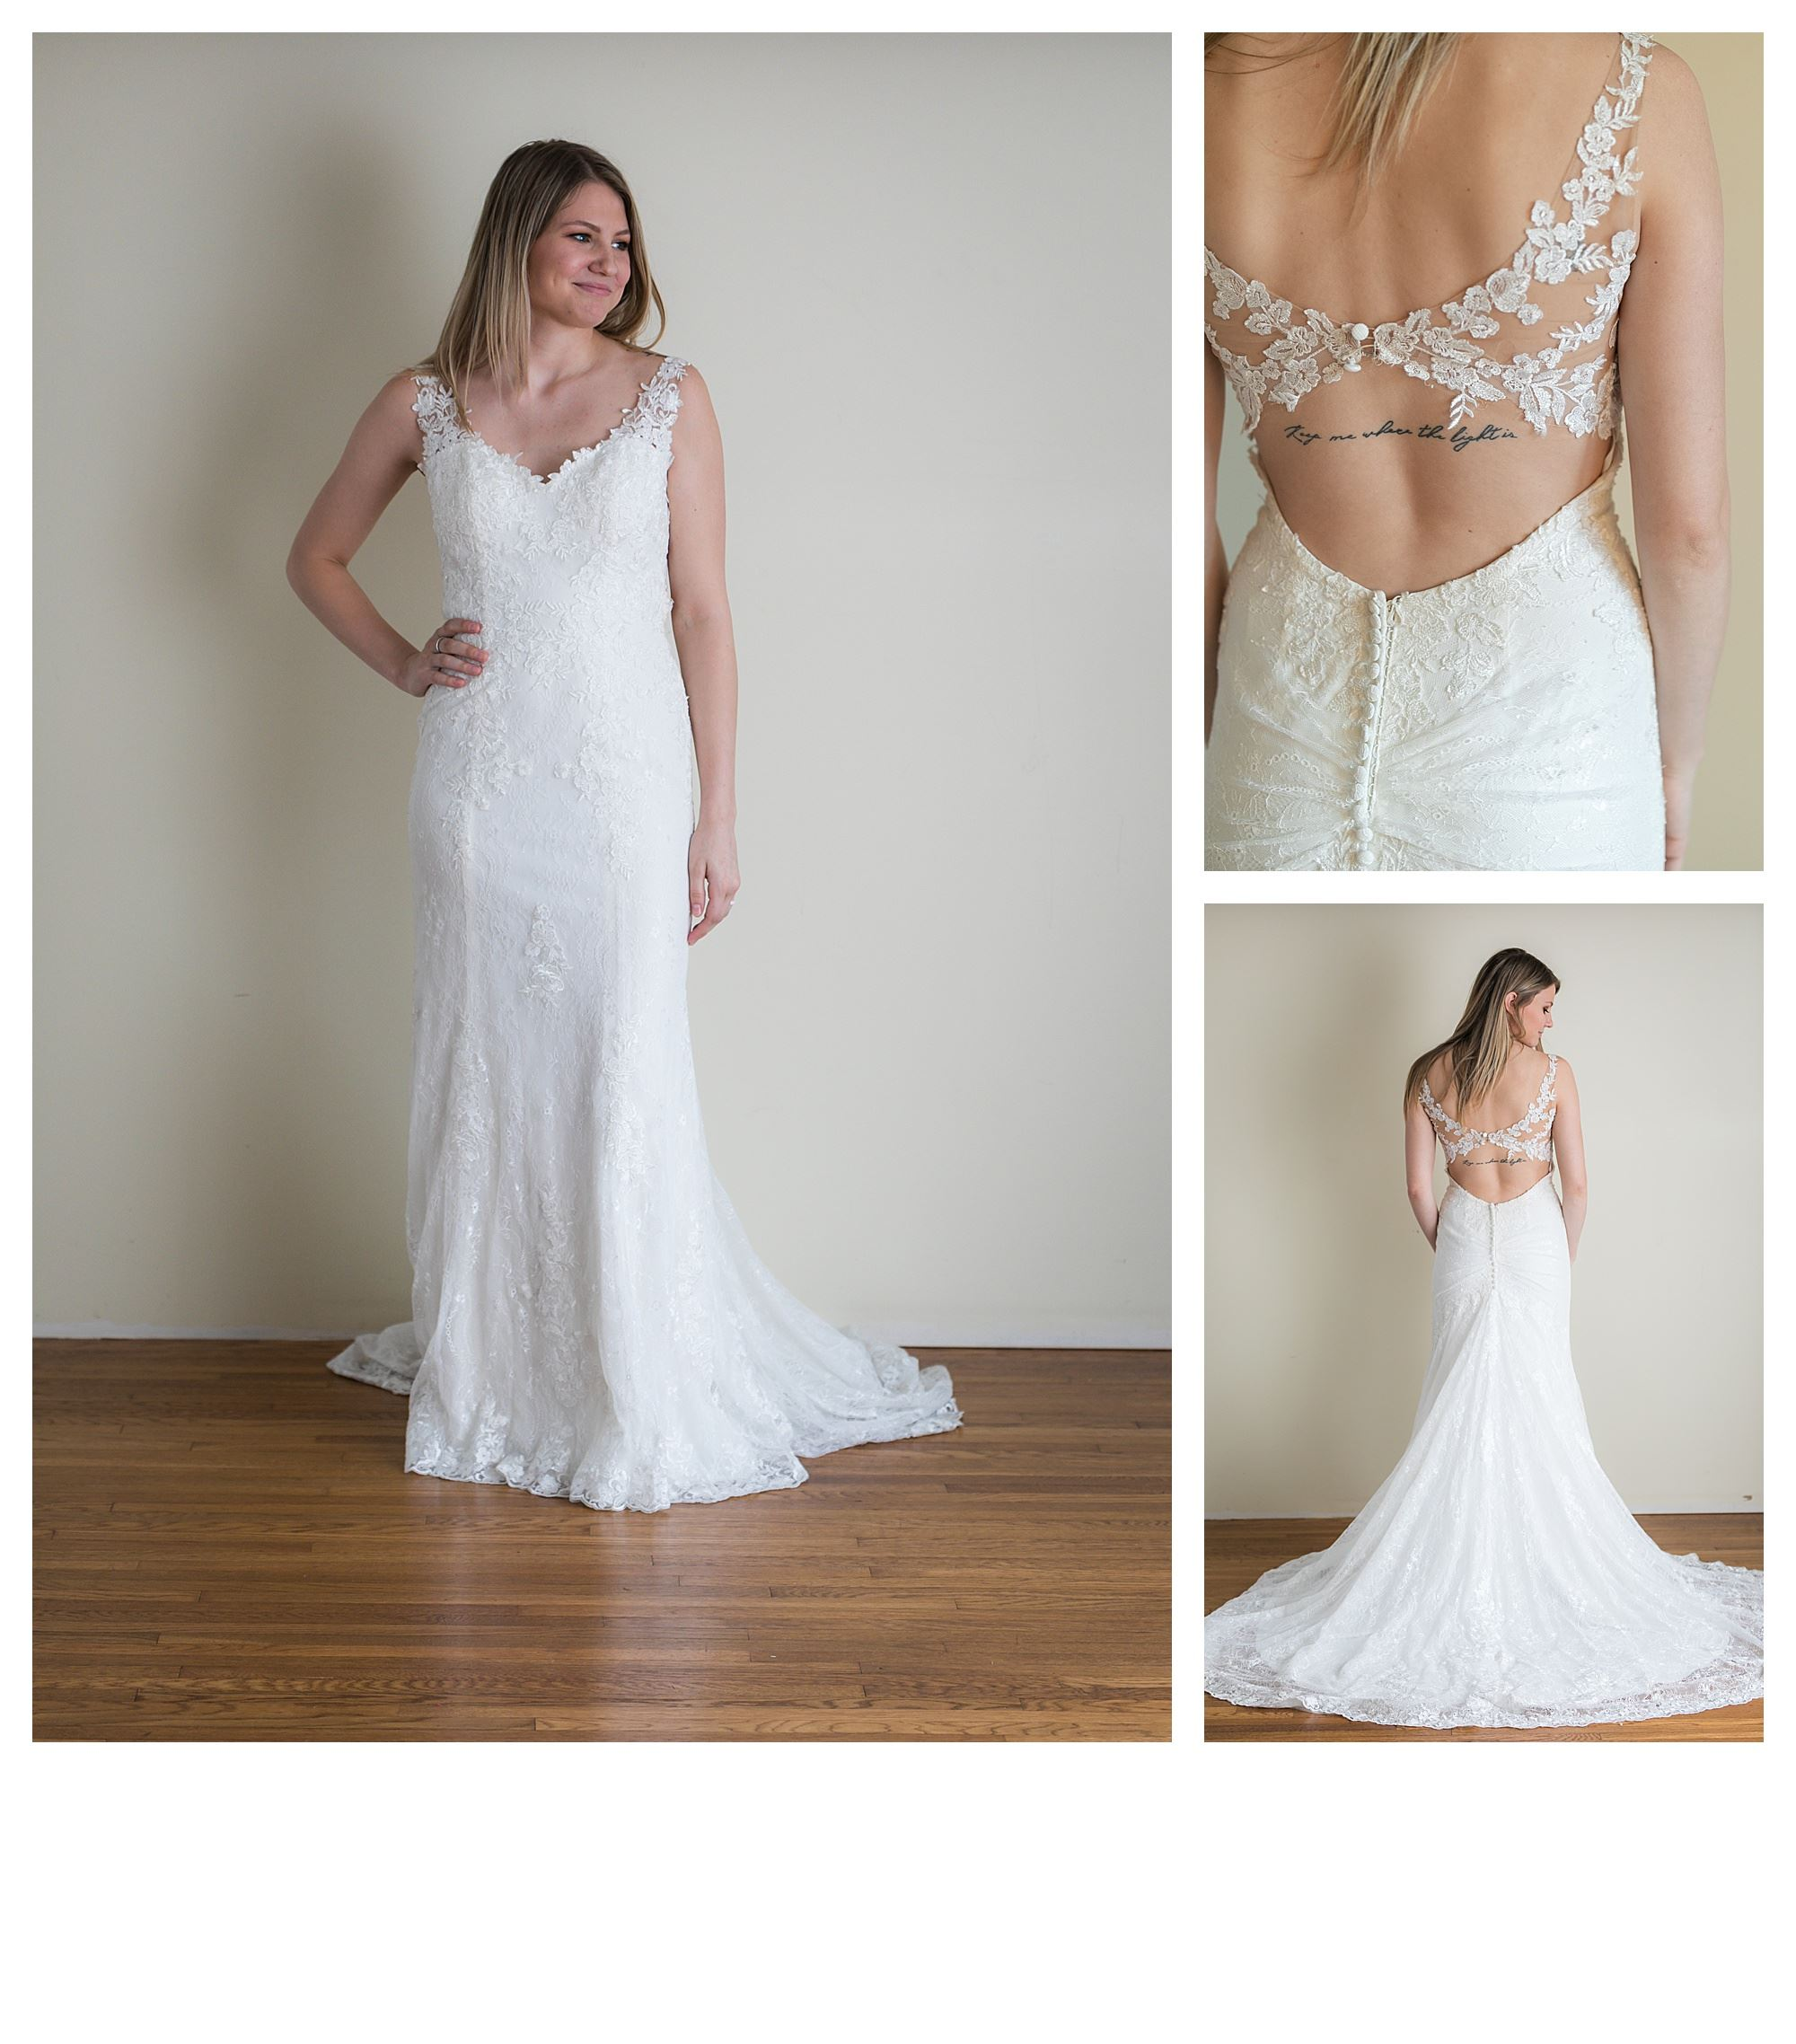 Solana - Size 10 - Ivory/Sand - Originally priced $1499 - Sample box price $999